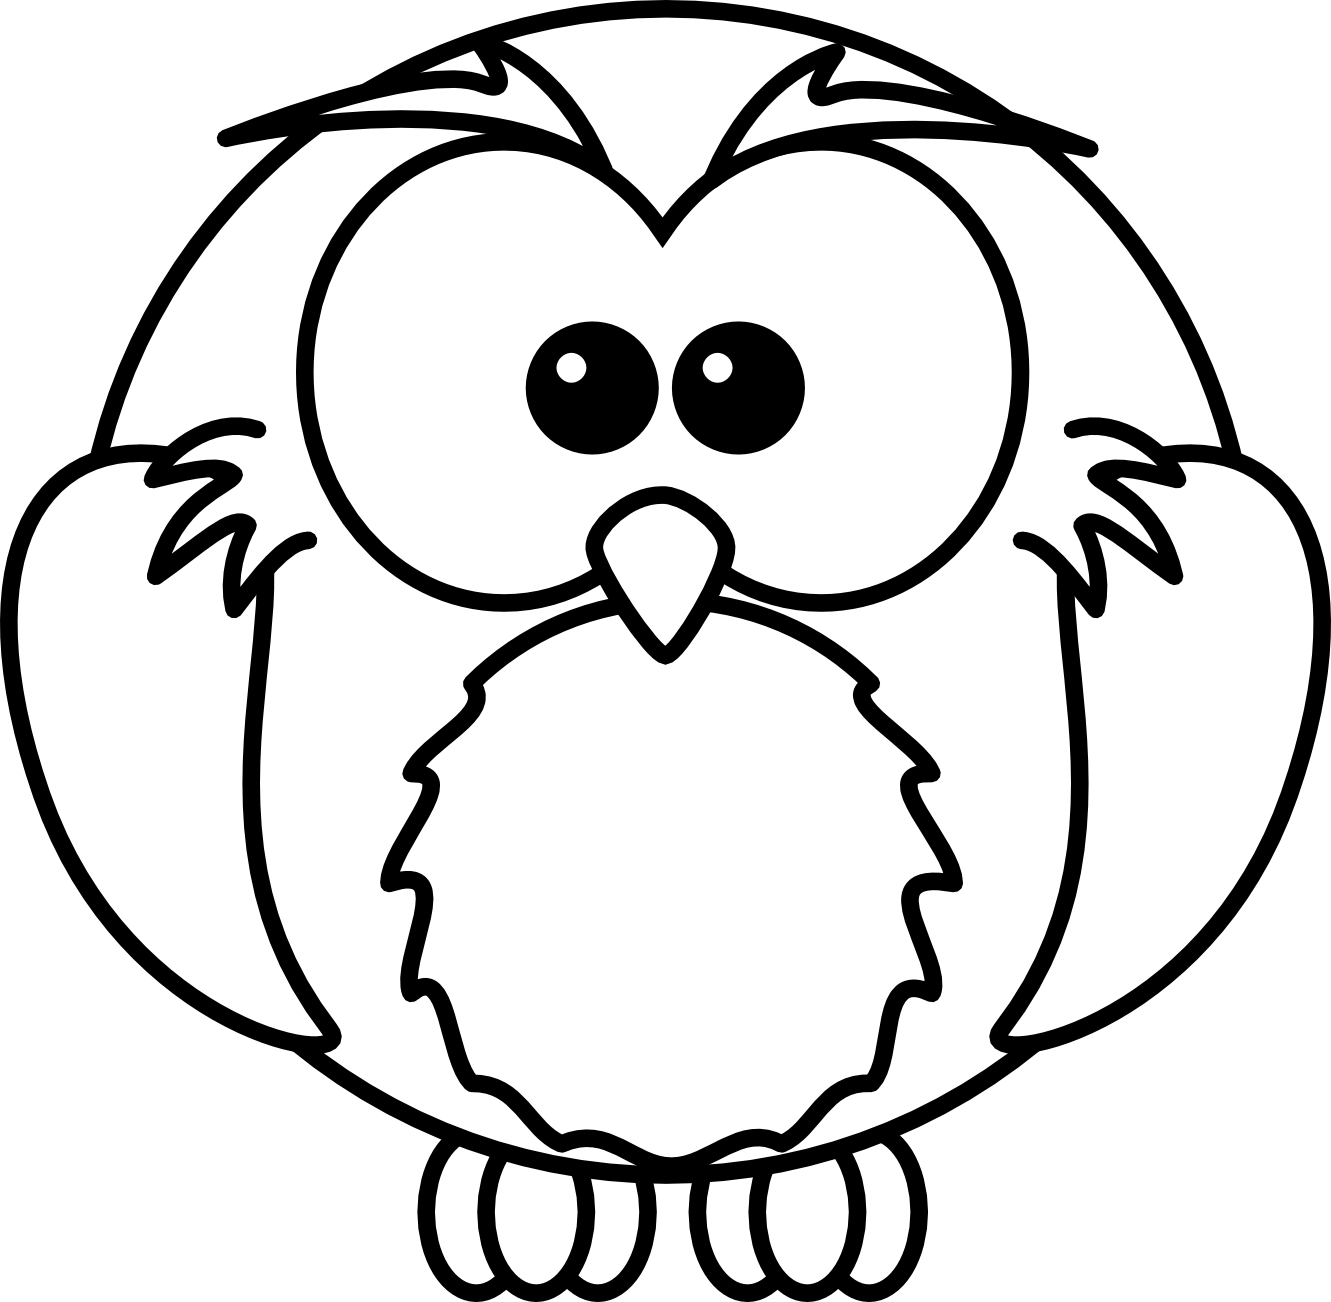 1331x1302 Cute Dinosaur Clipart Black And White Clipart Panda